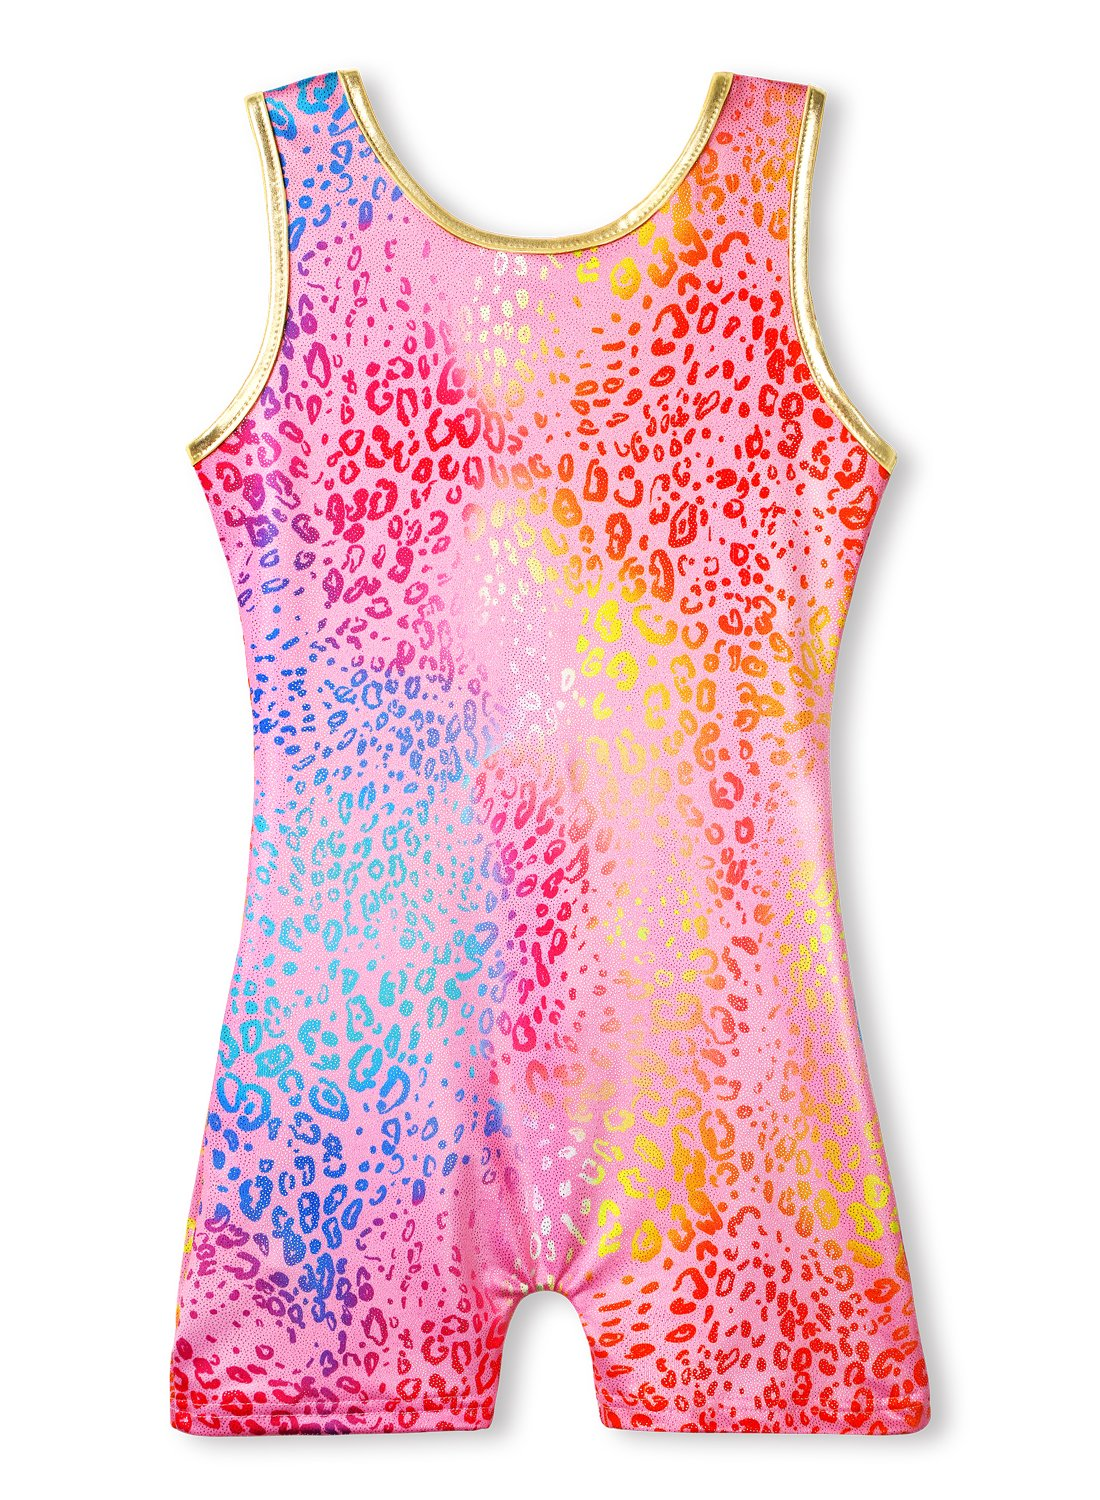 Pink Leotards for Girls Gymnastics Size 6-7 Years Old Sparkles Print Dance wear by HOZIY